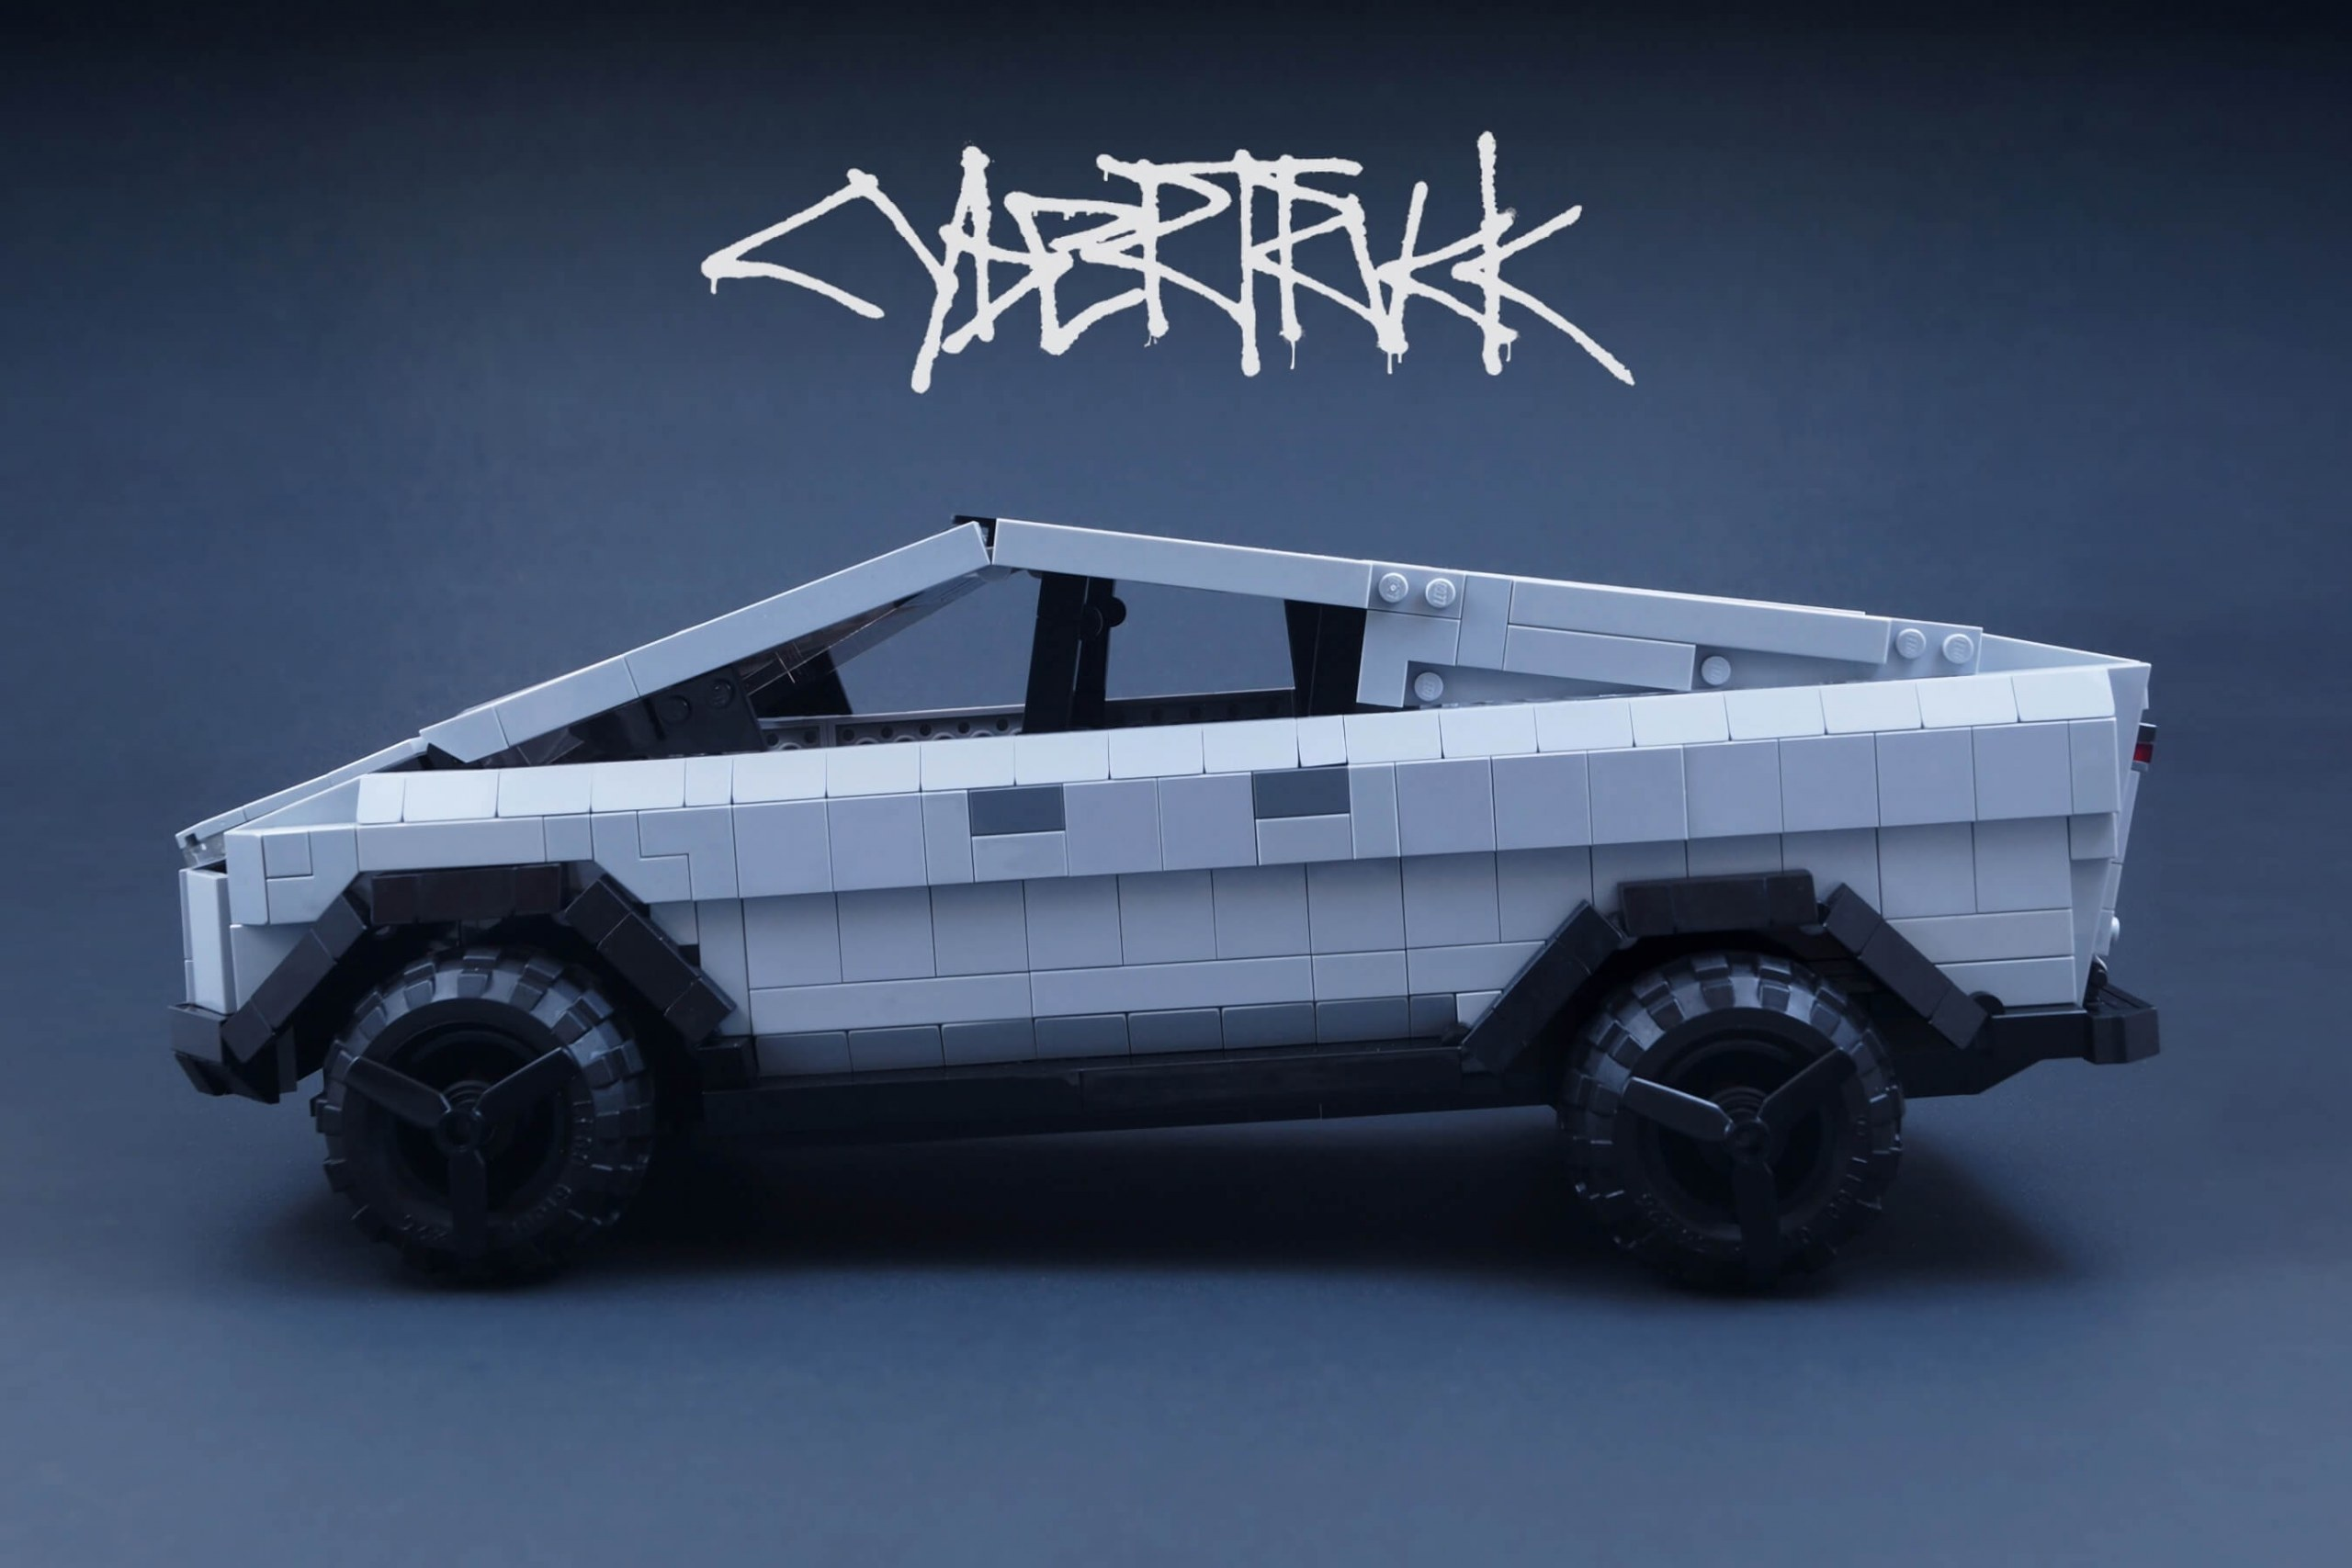 Fan-made Lego Cybertruck may become real kit if it gets enough support